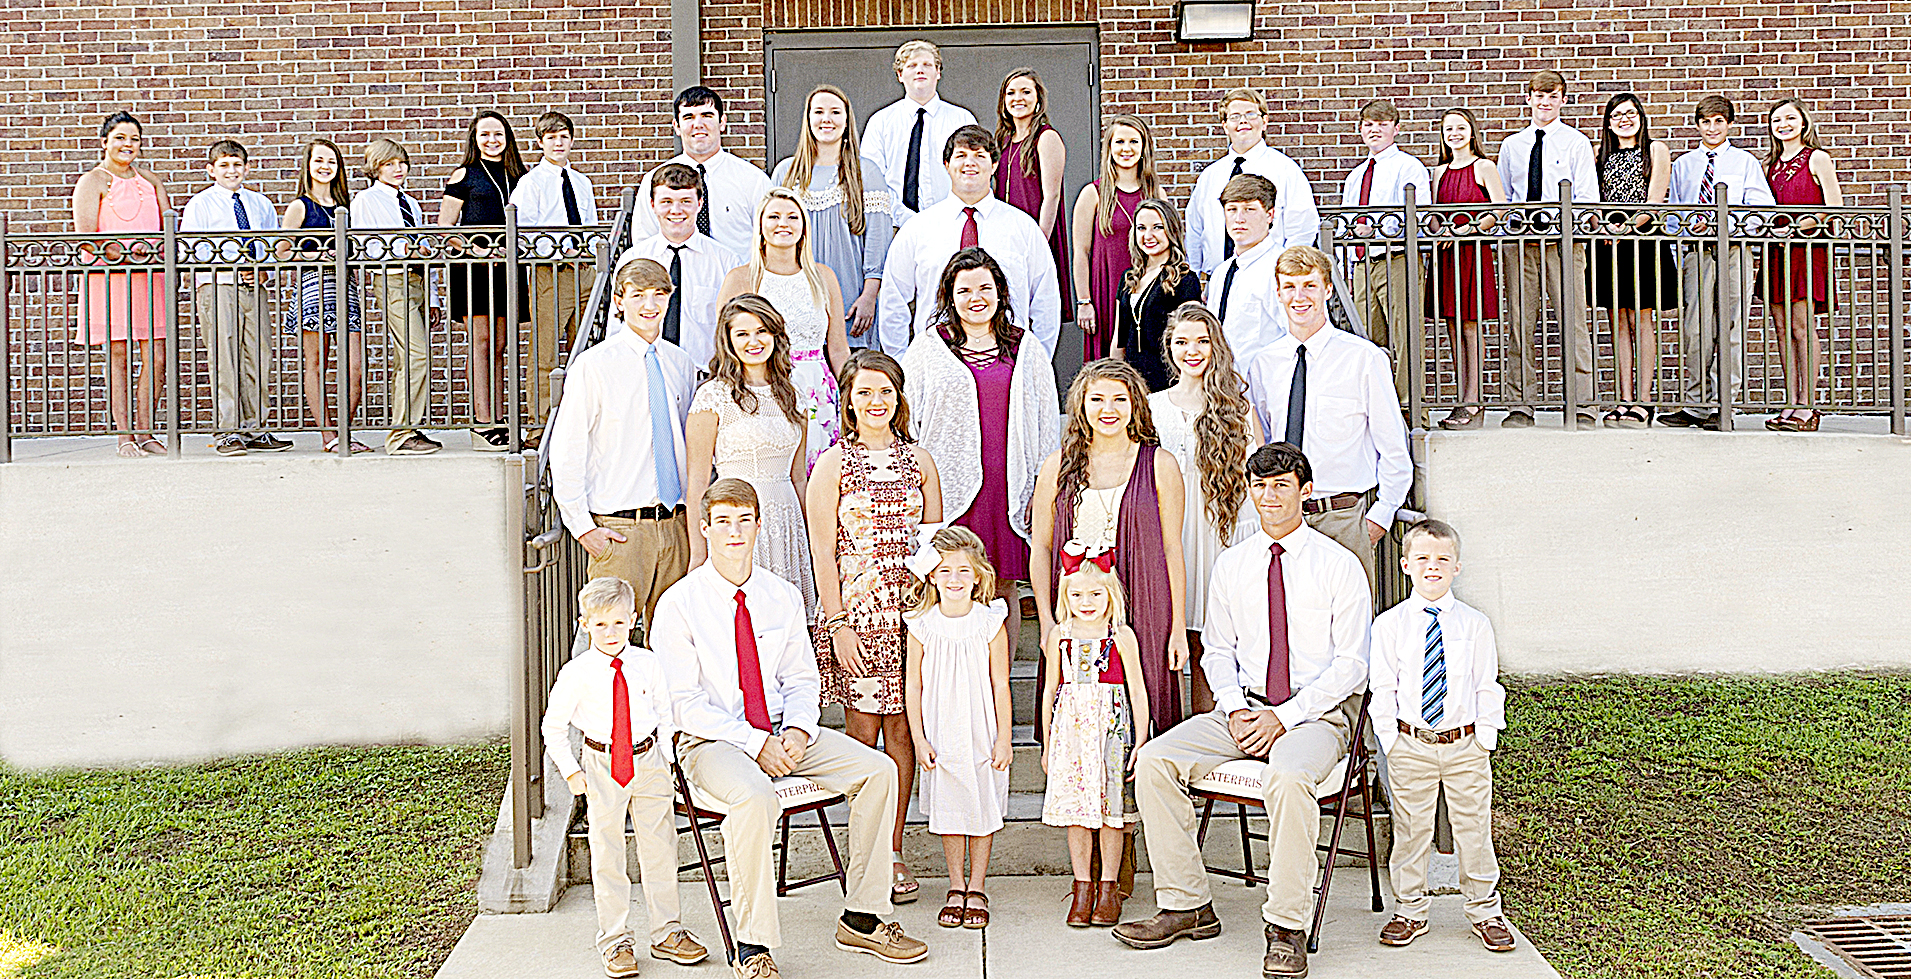 Photo submitted/ Homecoming for Enterprise High School is tonight. The homecoming court includes, front row, attendant Kayleb Gipson, left, escort Zach Hodges, homecoming queen Molly Burke, attendant Eliza Gunnell, Miss EHS Courtney Greer, attendant Baylee Nations, Mr. EHS Brant White and attendant Rosson Falvey; second row, escort Trevor Freeman, senior maid Marlee Francis, high school football maid Maddie Carter, senior maid Devan Hardin and escort Austin Carter; third row, escort Roman Carter, junior maid Karlee Burgess, high school football escort Lane Bessonette, junior maid Caley Cangemi and escort Kail Jordan;  fourth row, escort Hunter Richardson, sophomore maid Gracie Thompson, sophomore Jacy Wallace and escort Brad Lambert; and back row, seventh grade maid Anna Burgess, escort Dawson Smith, seven grade maid Celsey Bourn, escort John Rivers Brown, freshman maid Julia Ann Townsend, escort Dustin Prather, escort John Burns, freshman maid Kaylie Burgess, escort Chase White, junior high football maid Emma Waldrop, escort Dylan Carter, eighth grade maid Kaylee Ervin, escort Lawson Chemin and eighth grade maid Jessie Rippy.